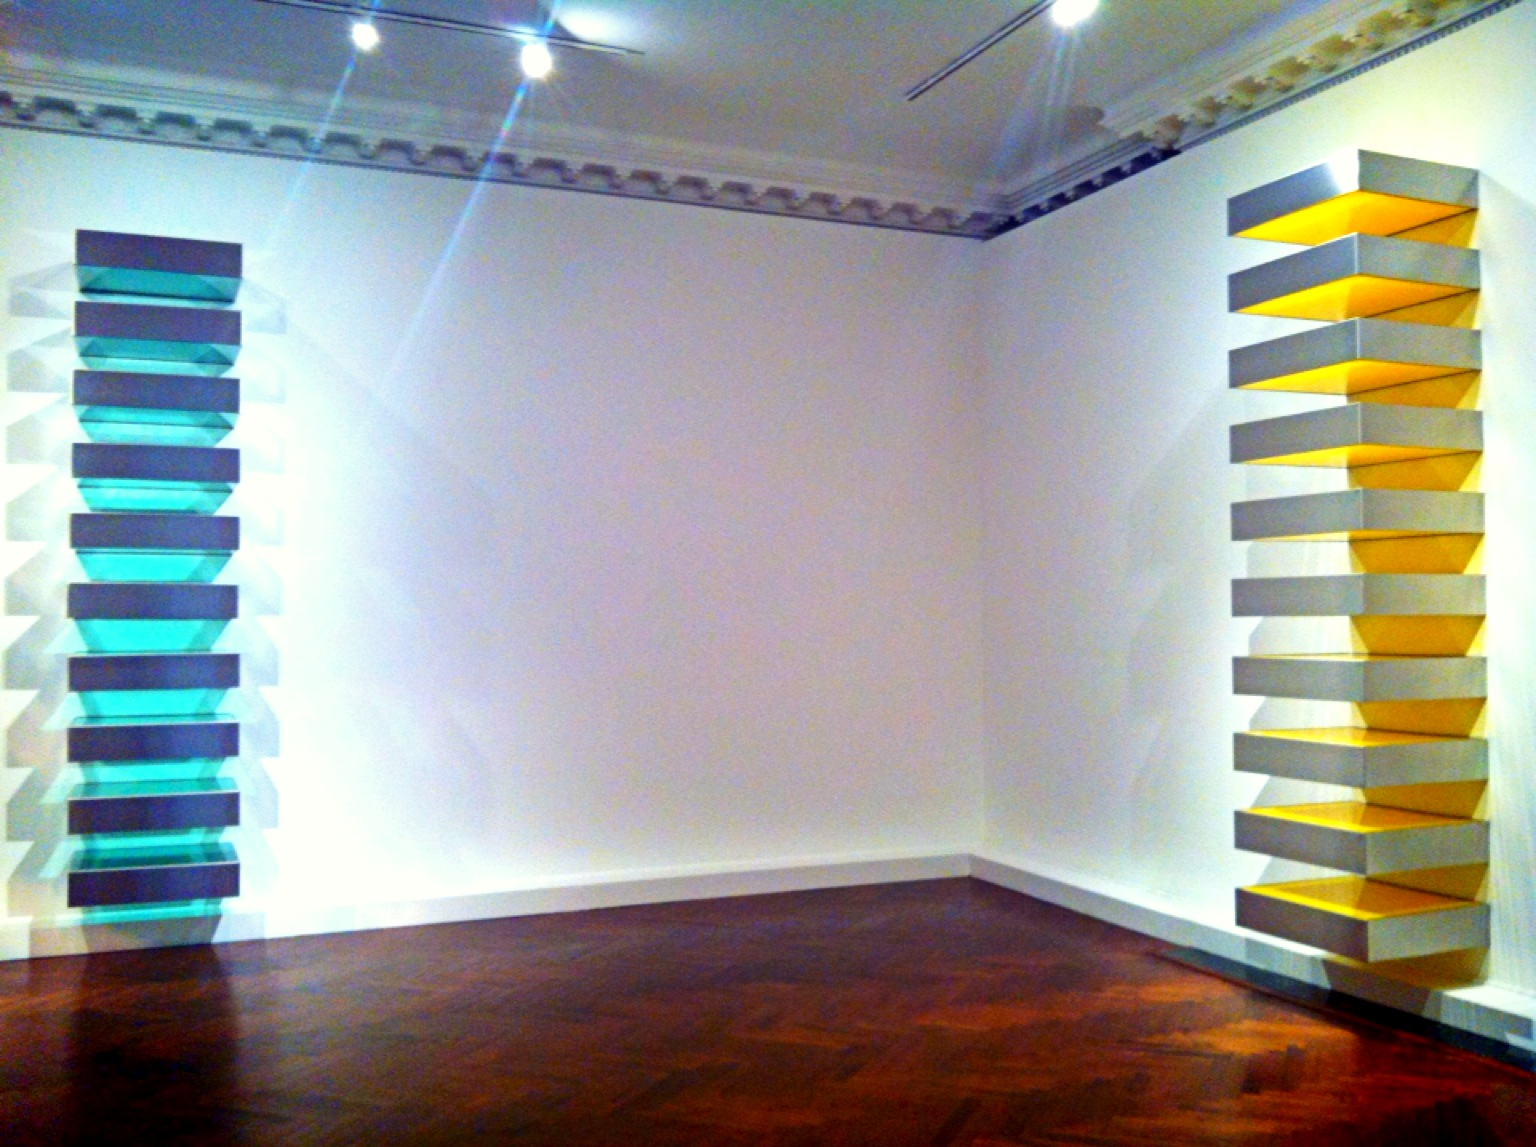 Donald judd mnuchin gallery artribune for Donald judd stack 1972